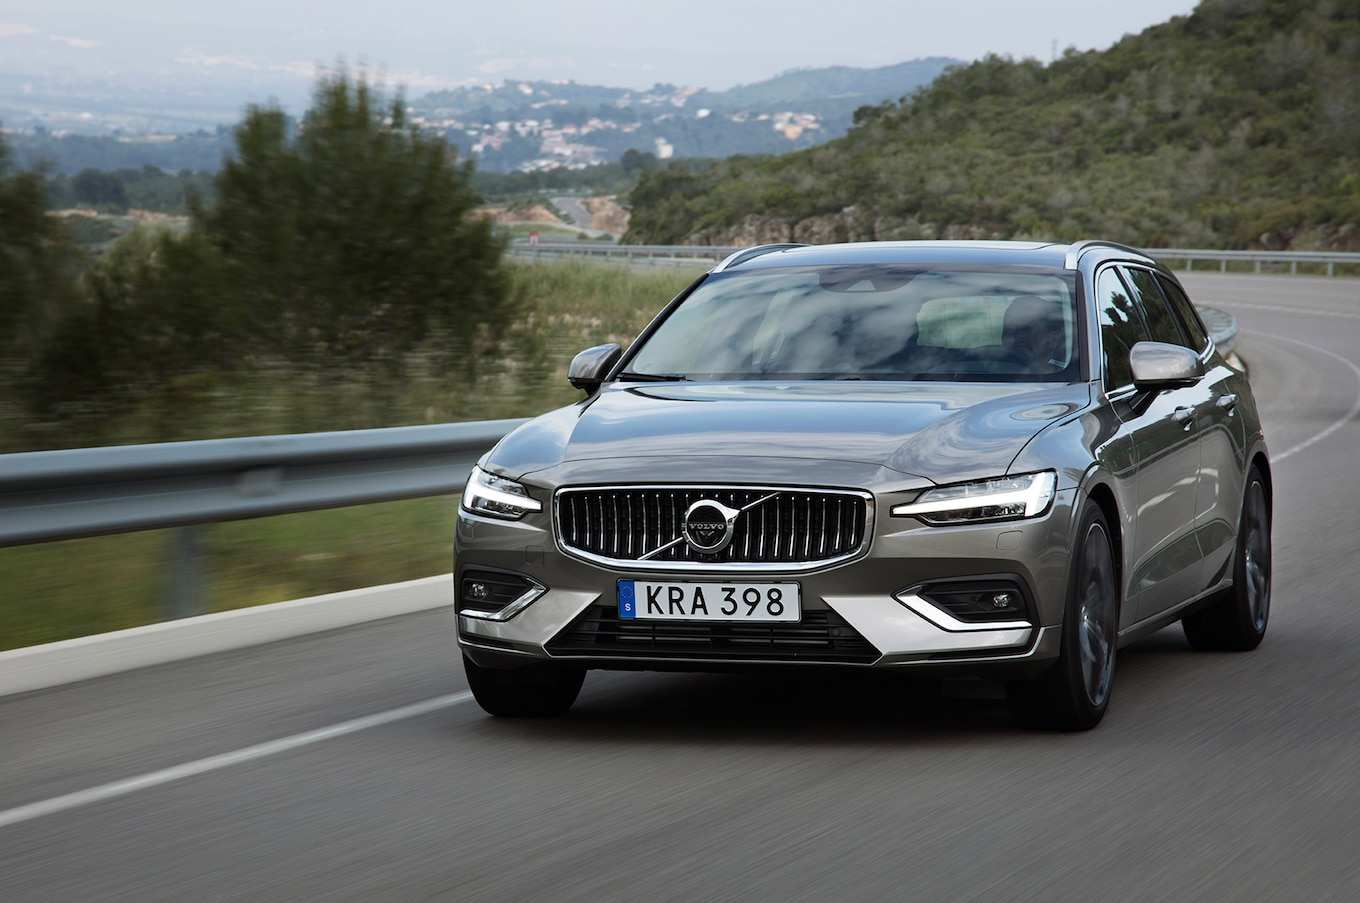 99 Great Volvo 2019 V60 Review Interior Exterior And Review Engine by Volvo 2019 V60 Review Interior Exterior And Review